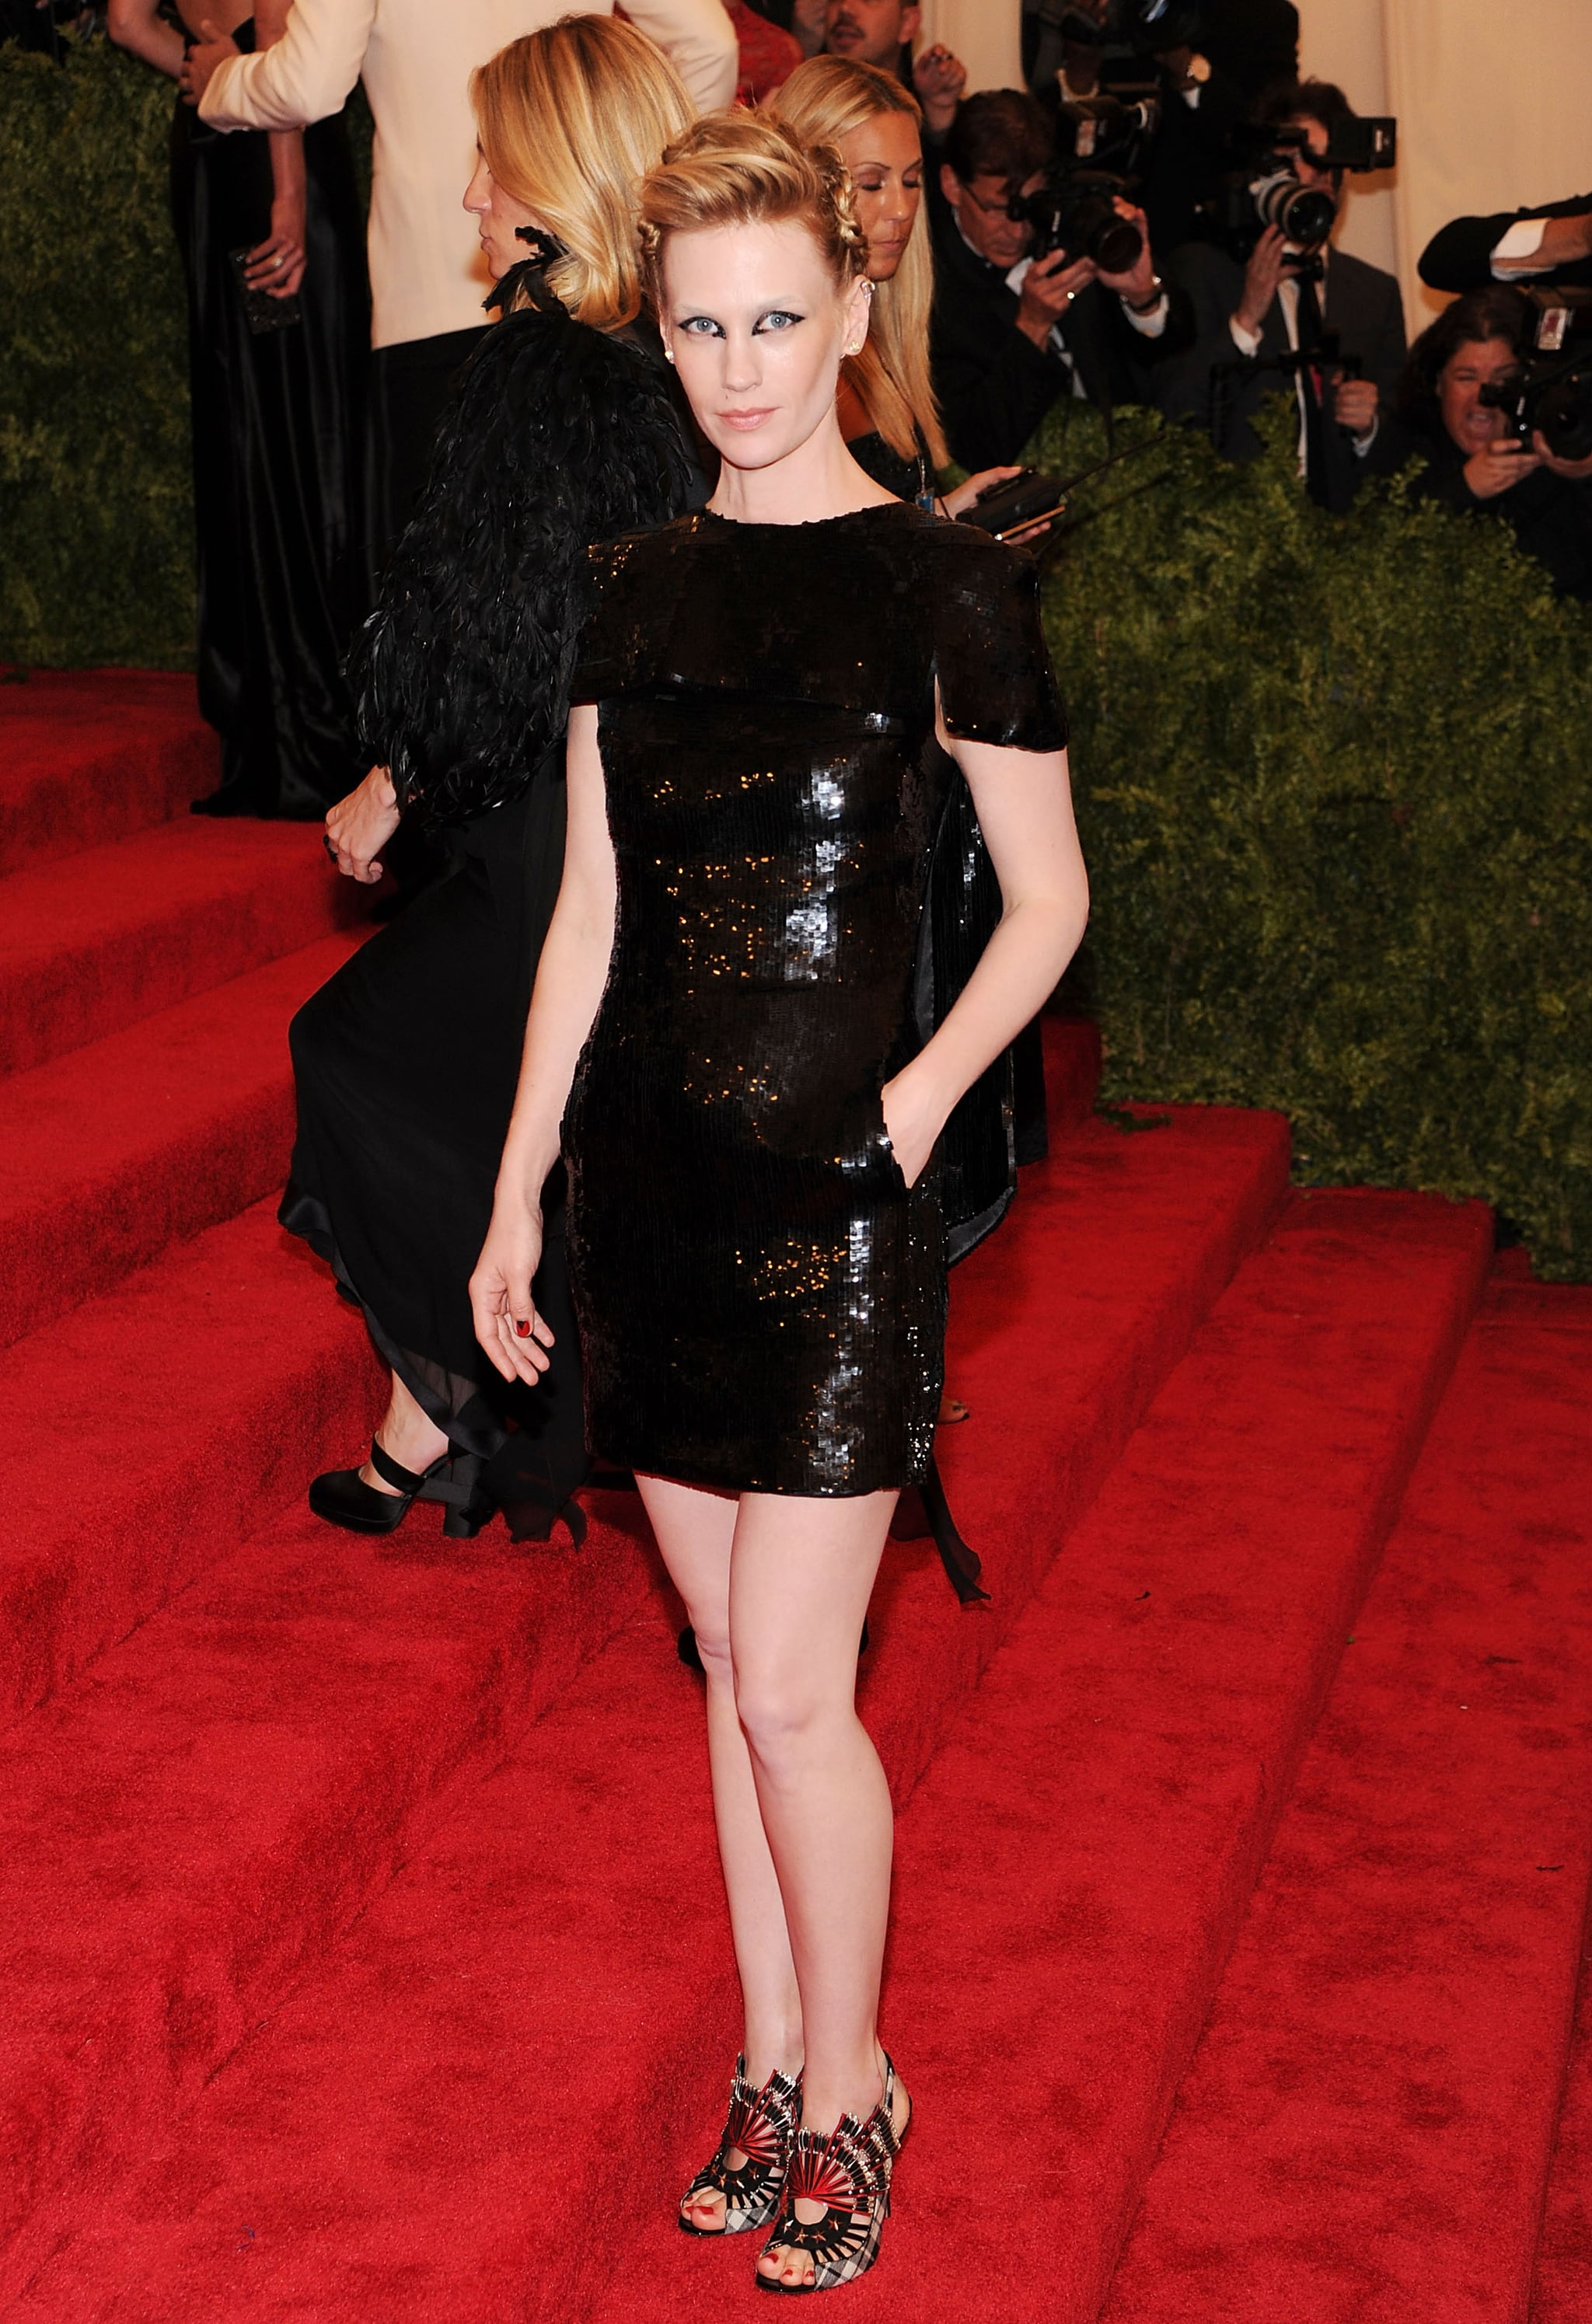 January Jones at the 2013 Met Gala